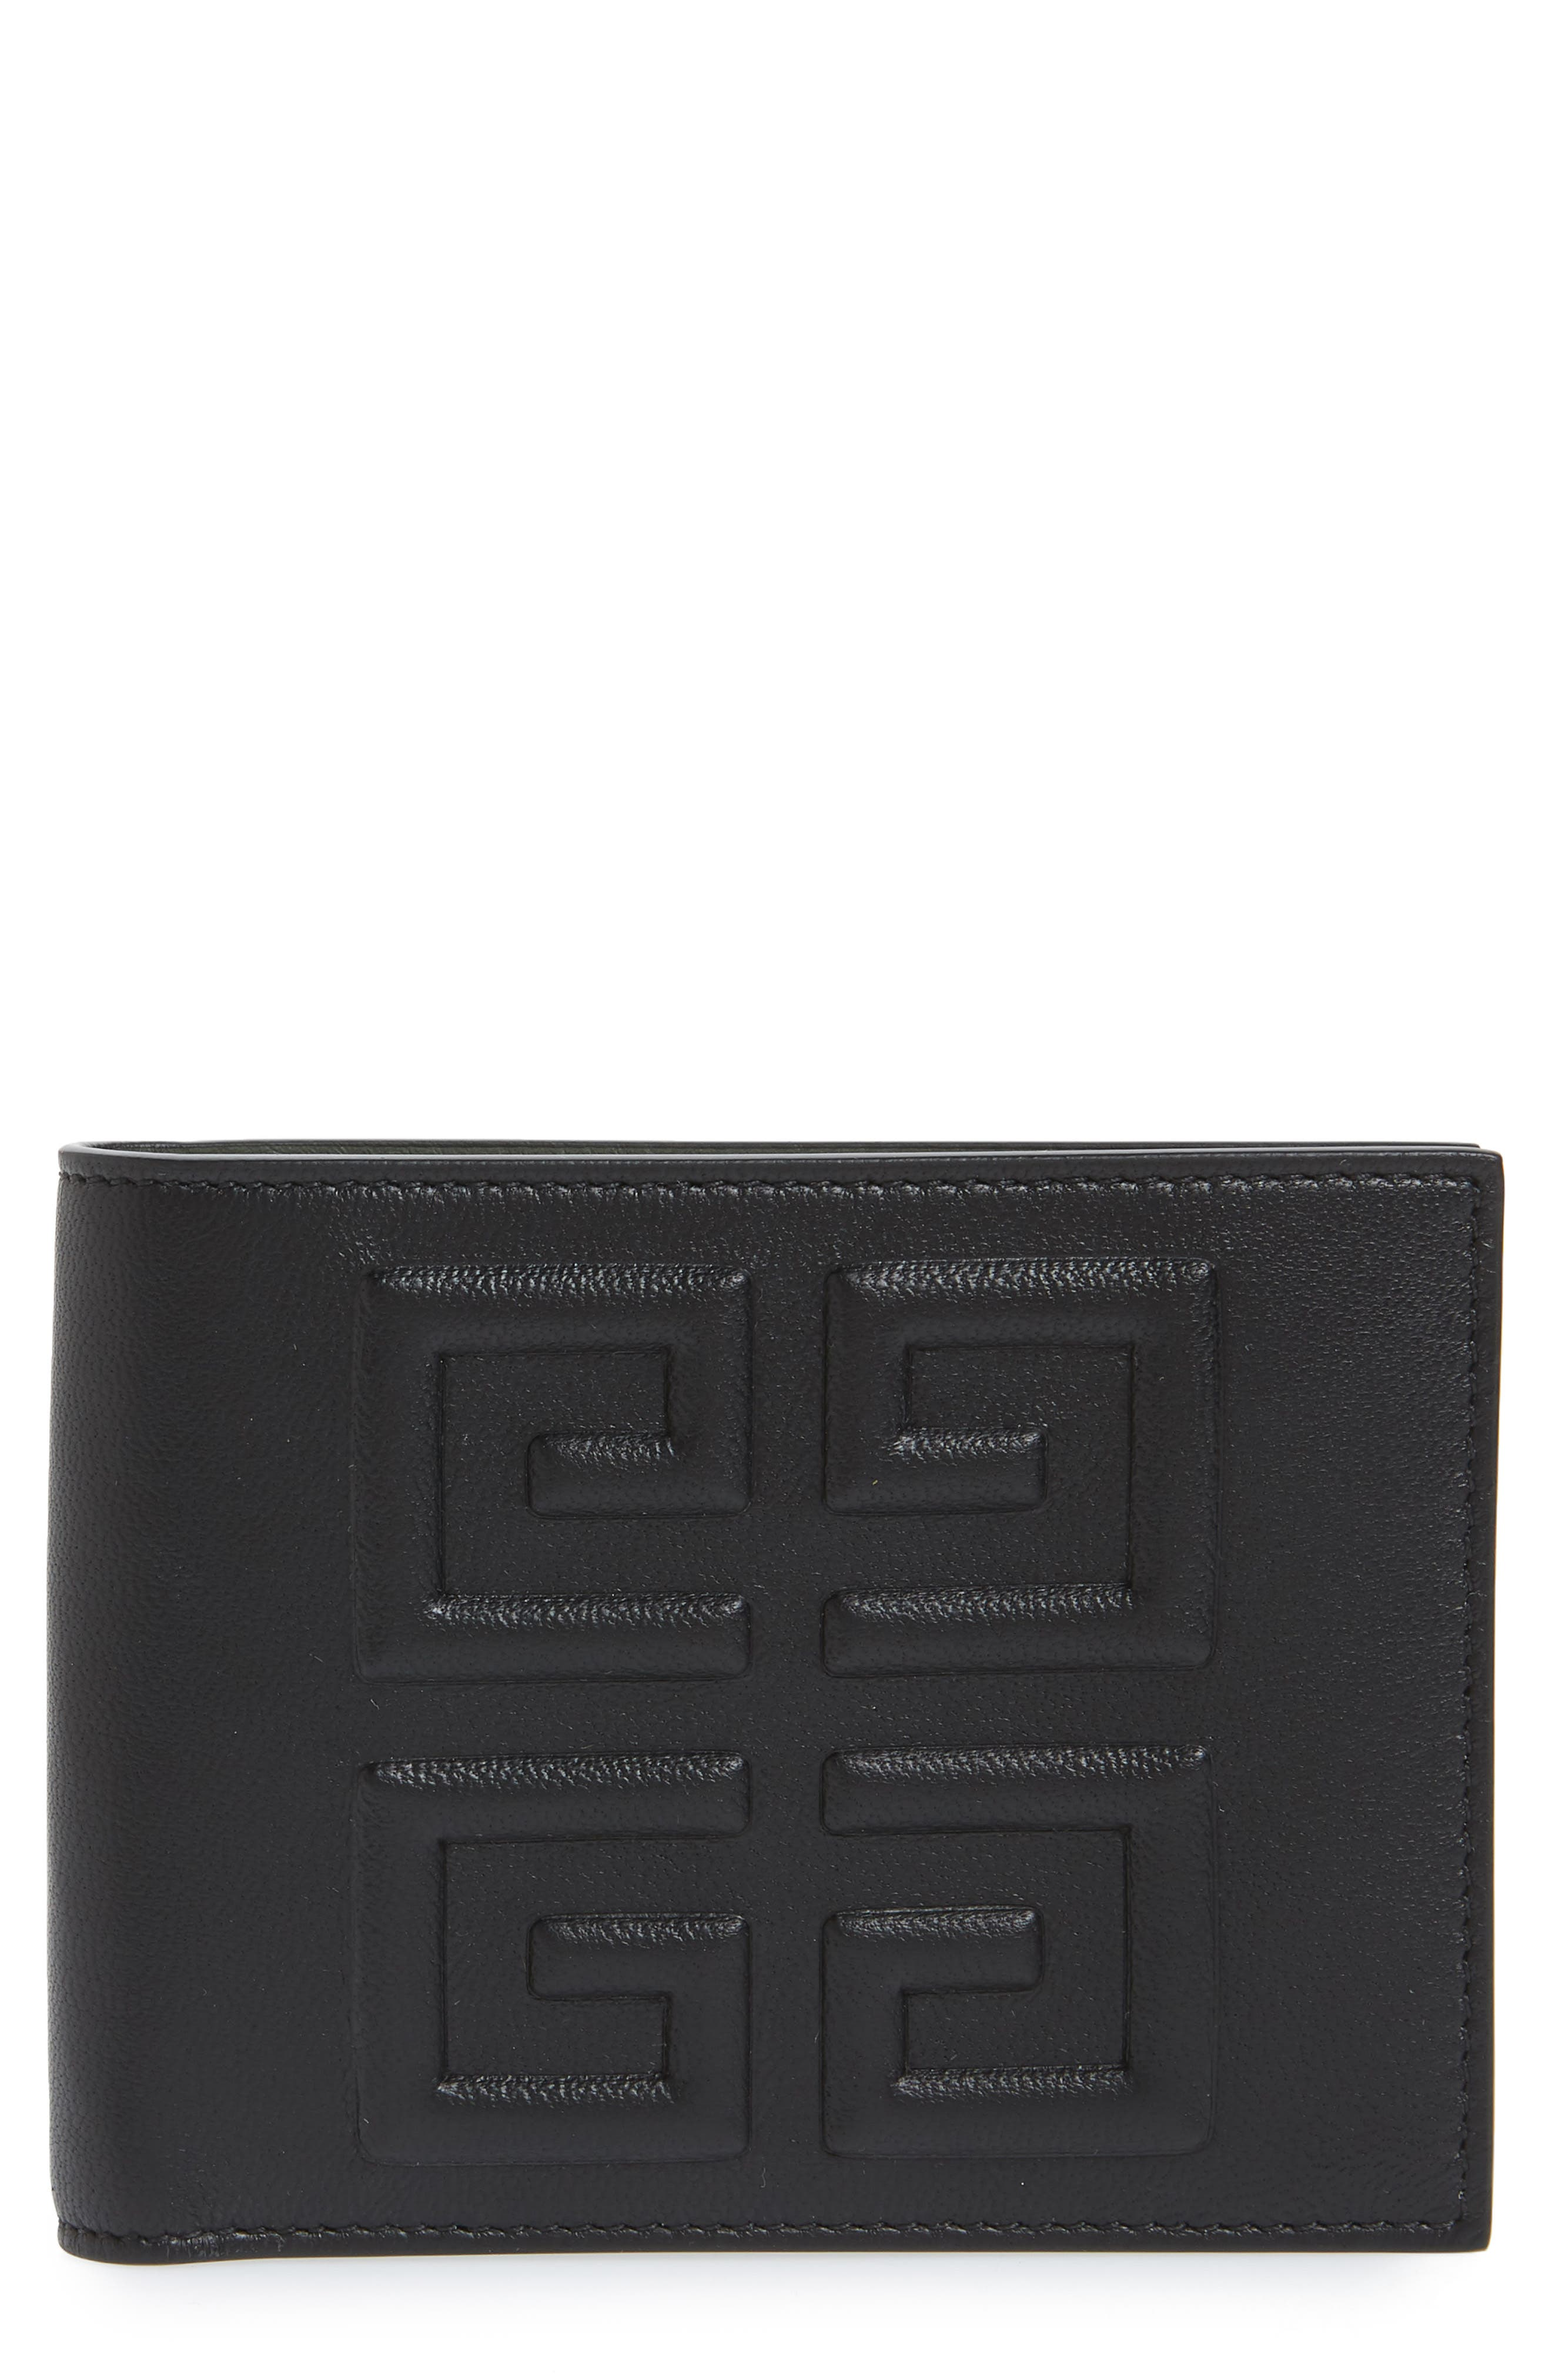 Embossed 4G Leather Bifold Wallet,                         Main,                         color, BLACK/ KHAKI